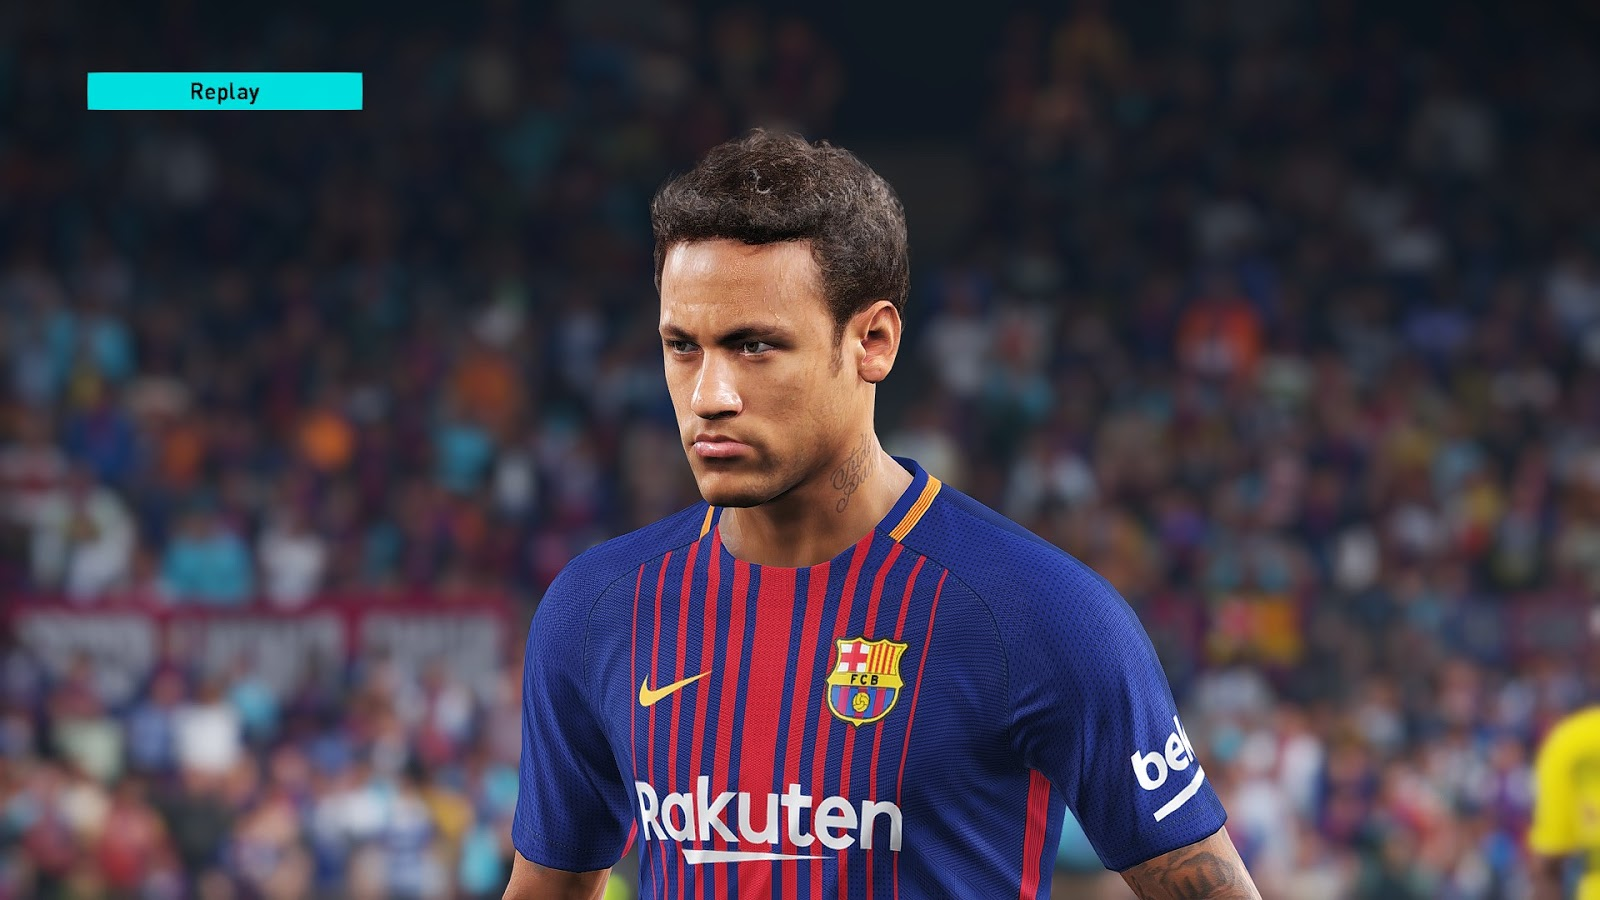 PES 2018 SweetFX Presets 4K HDR10 [Downloads]